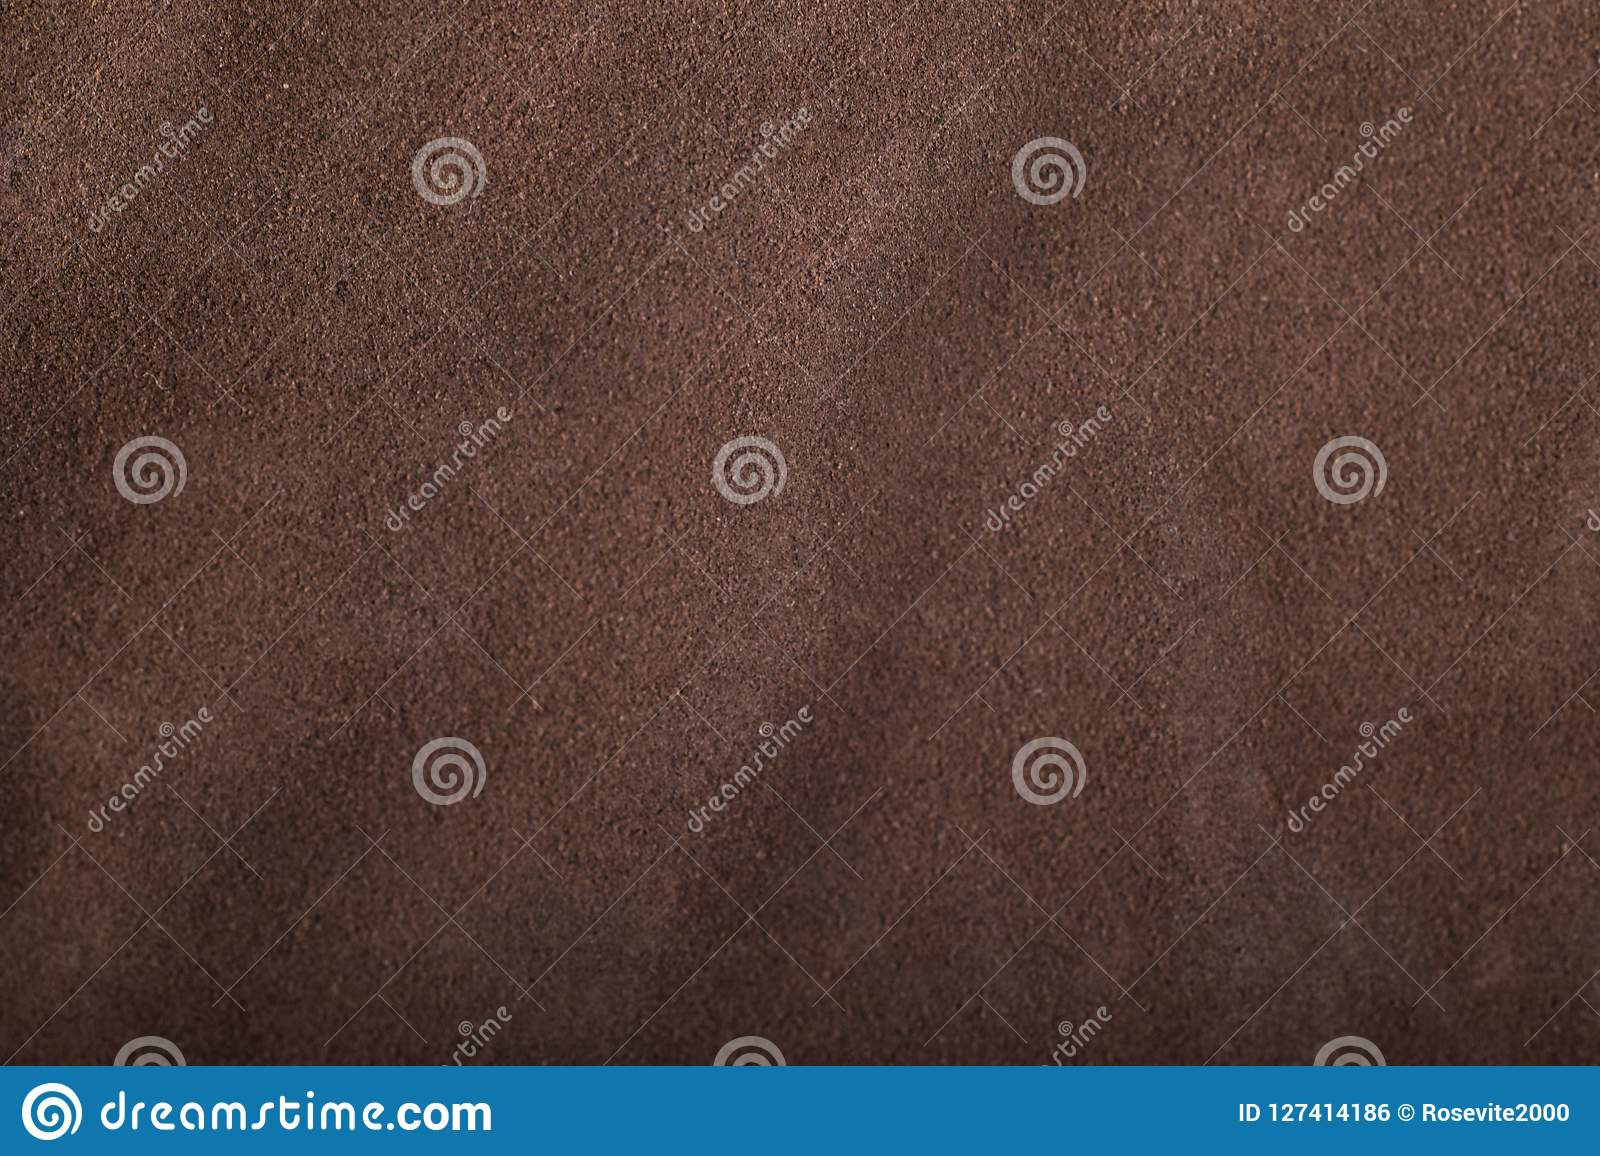 Leather texture | High-Quality Abstract Stock Photos